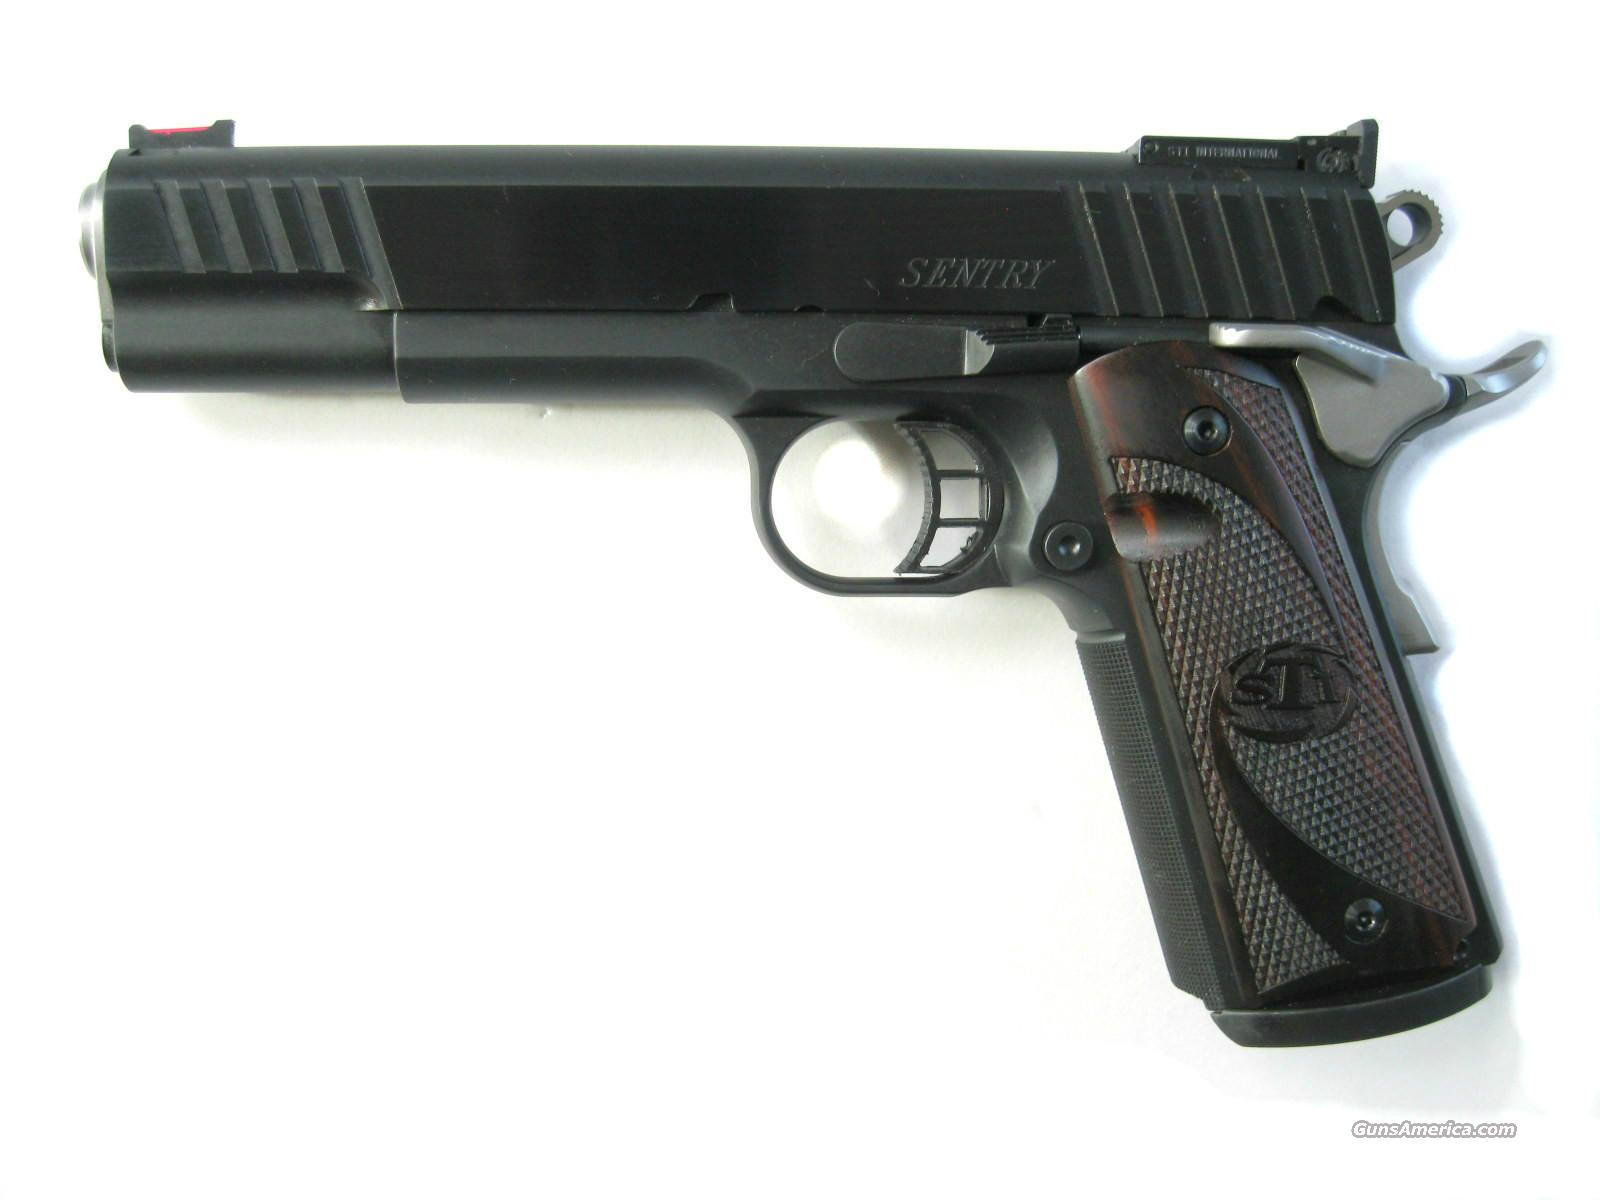 STI Sentry 40 S&W DFO Custom 1911 *NEW*  Guns > Pistols > STI Pistols